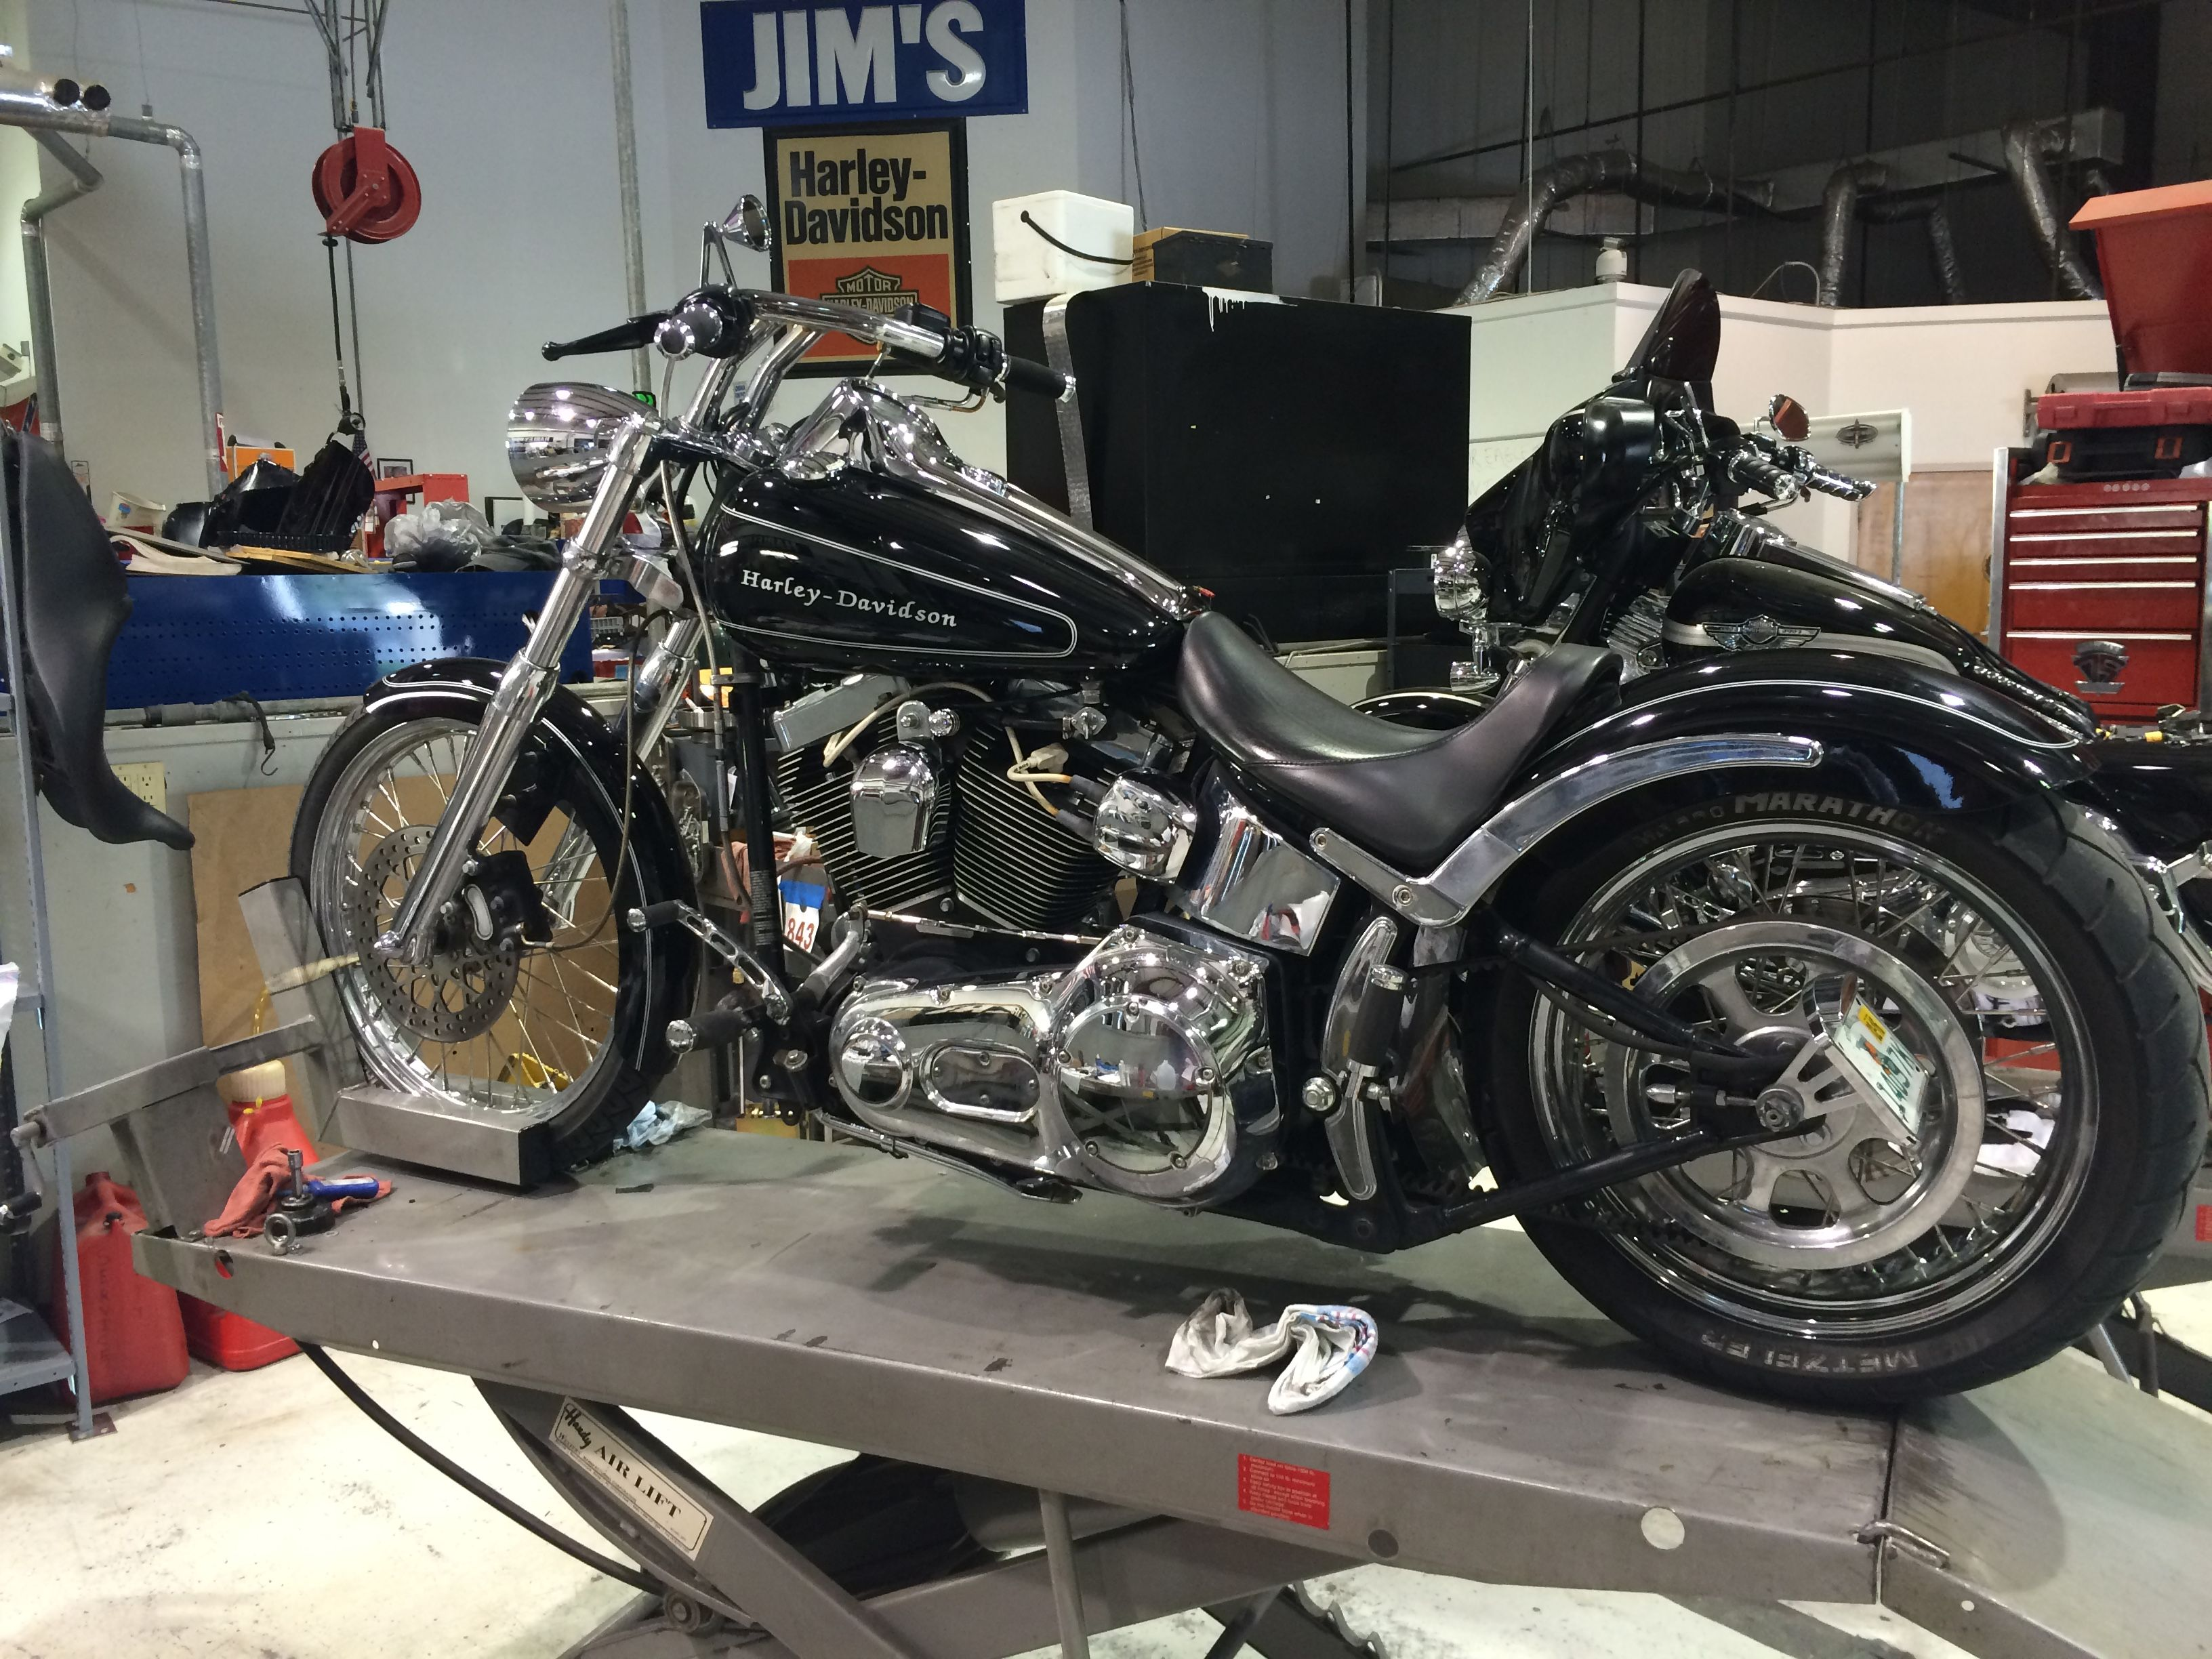 2005 Harley-Davidson Softail Deuce with Heartland Biker wide